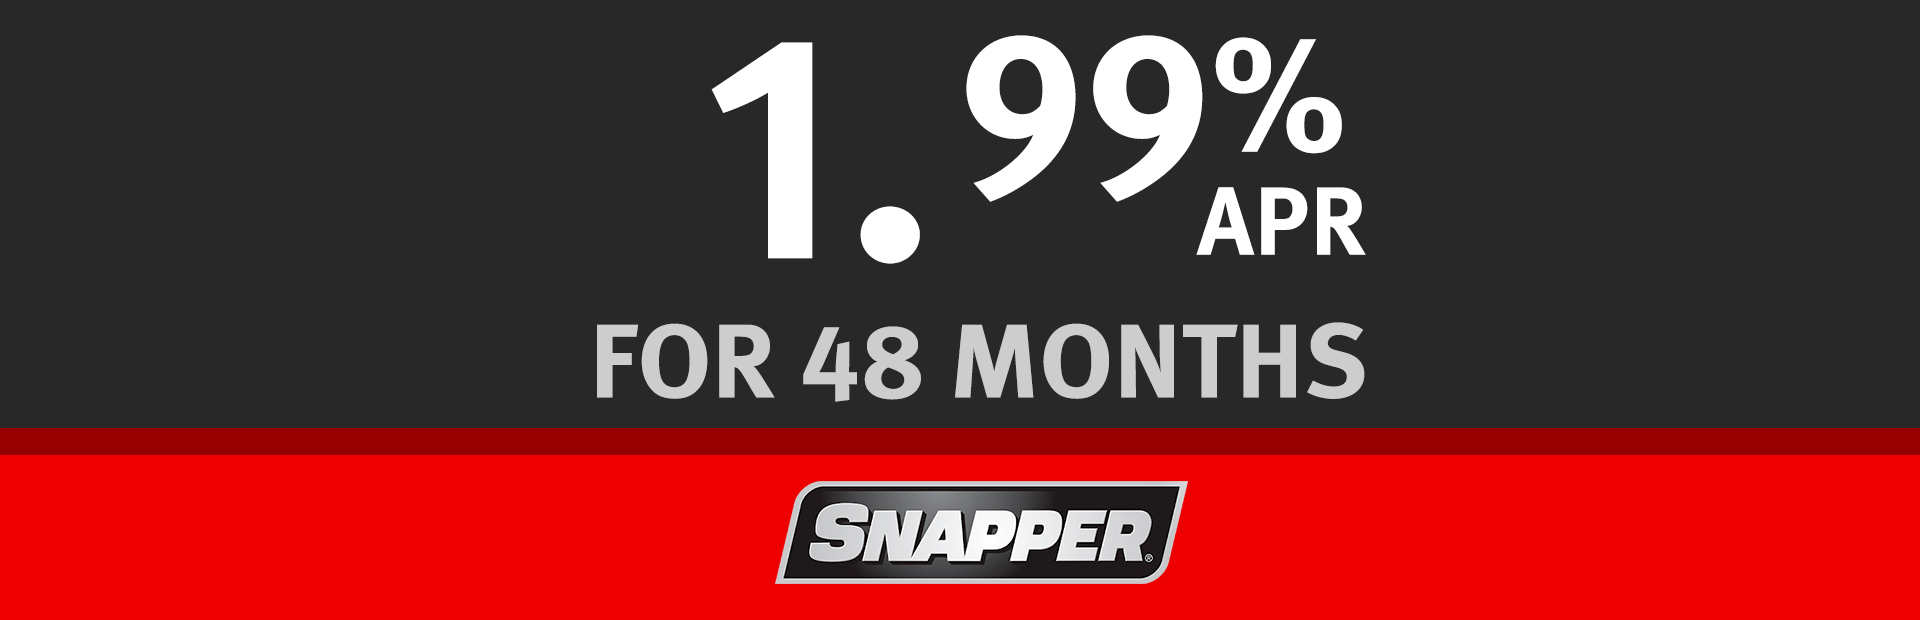 Snapper: 1.99% For 48 Months